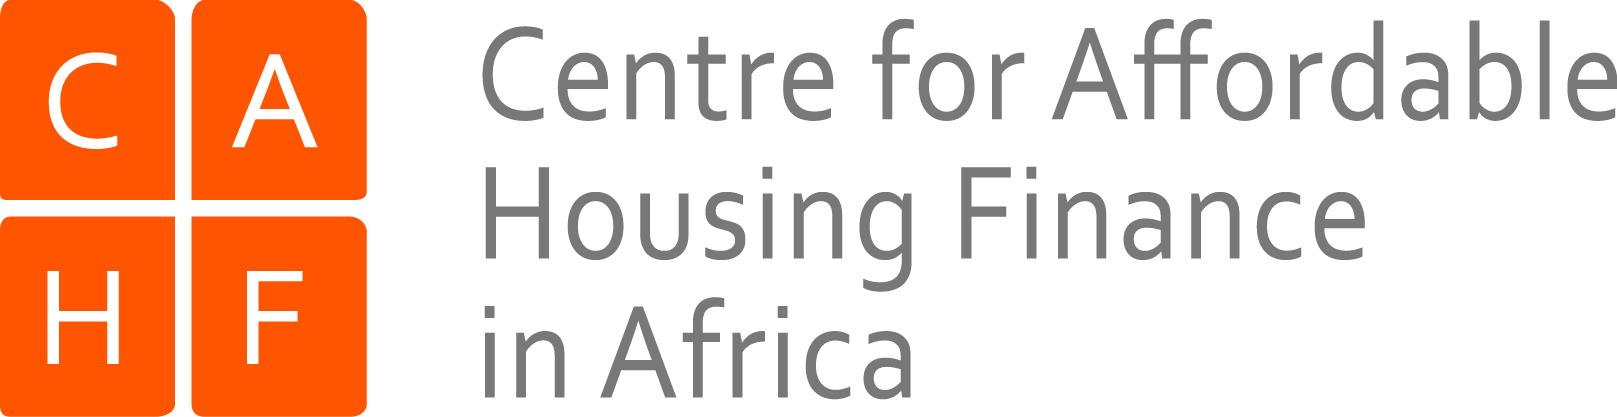 Image result for Centre for Affordable Housing Finance in Africa (CAHF)